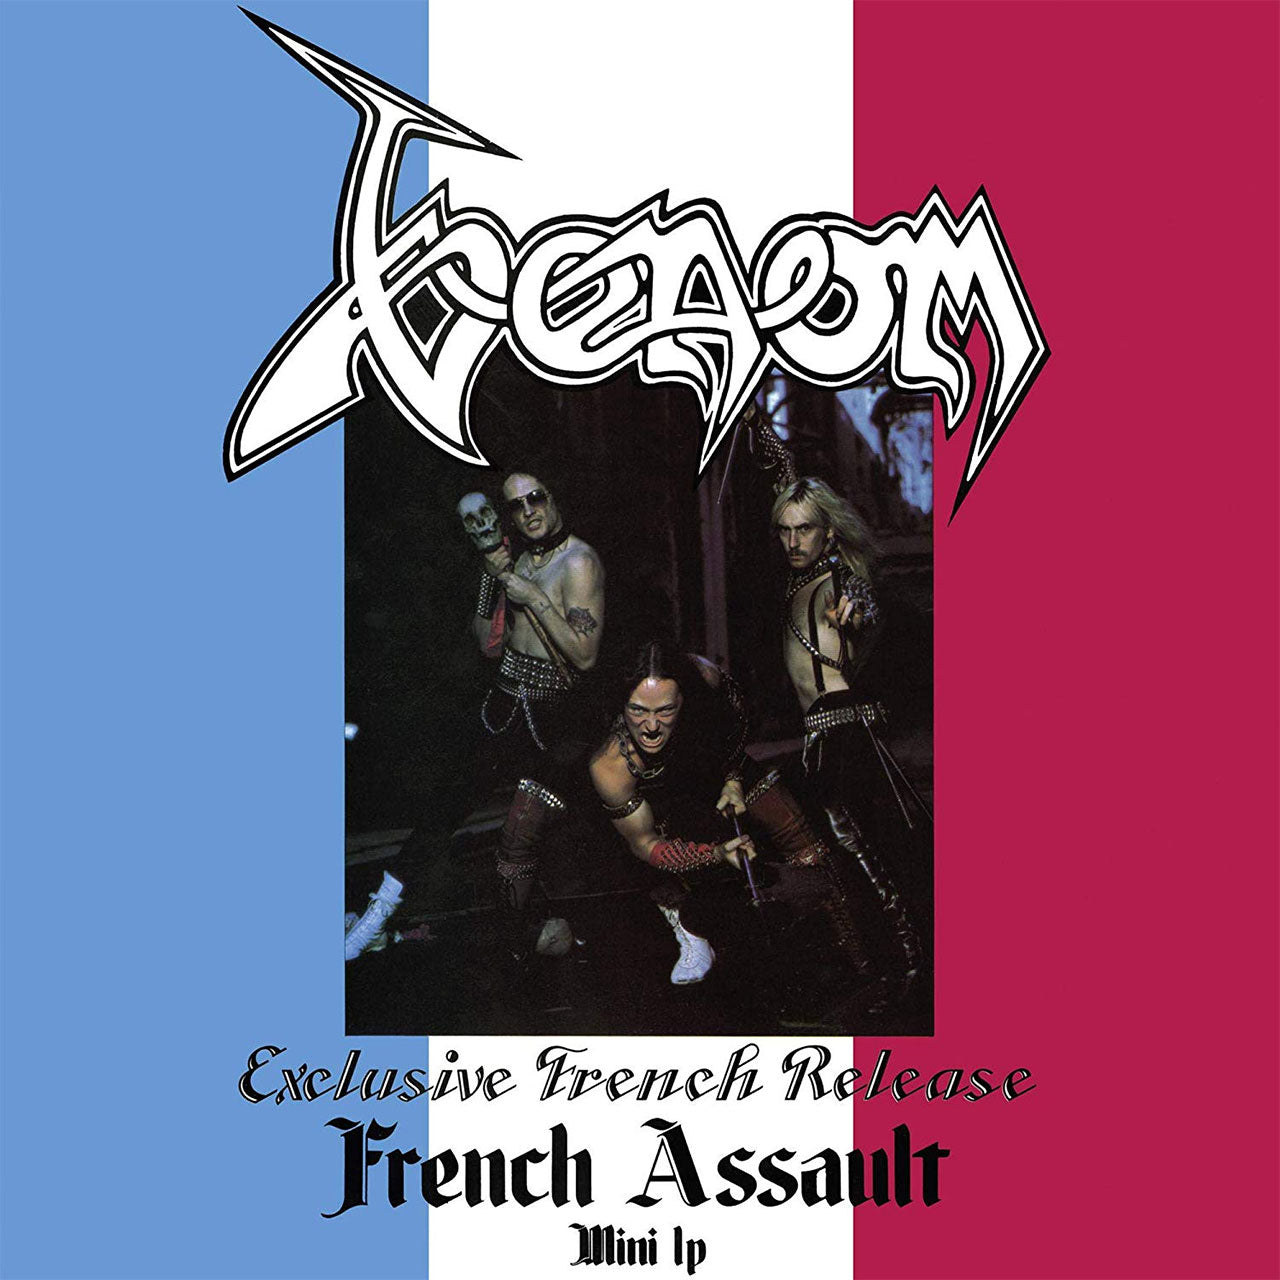 Venom - French Assault (2017 Reissue) (LP)